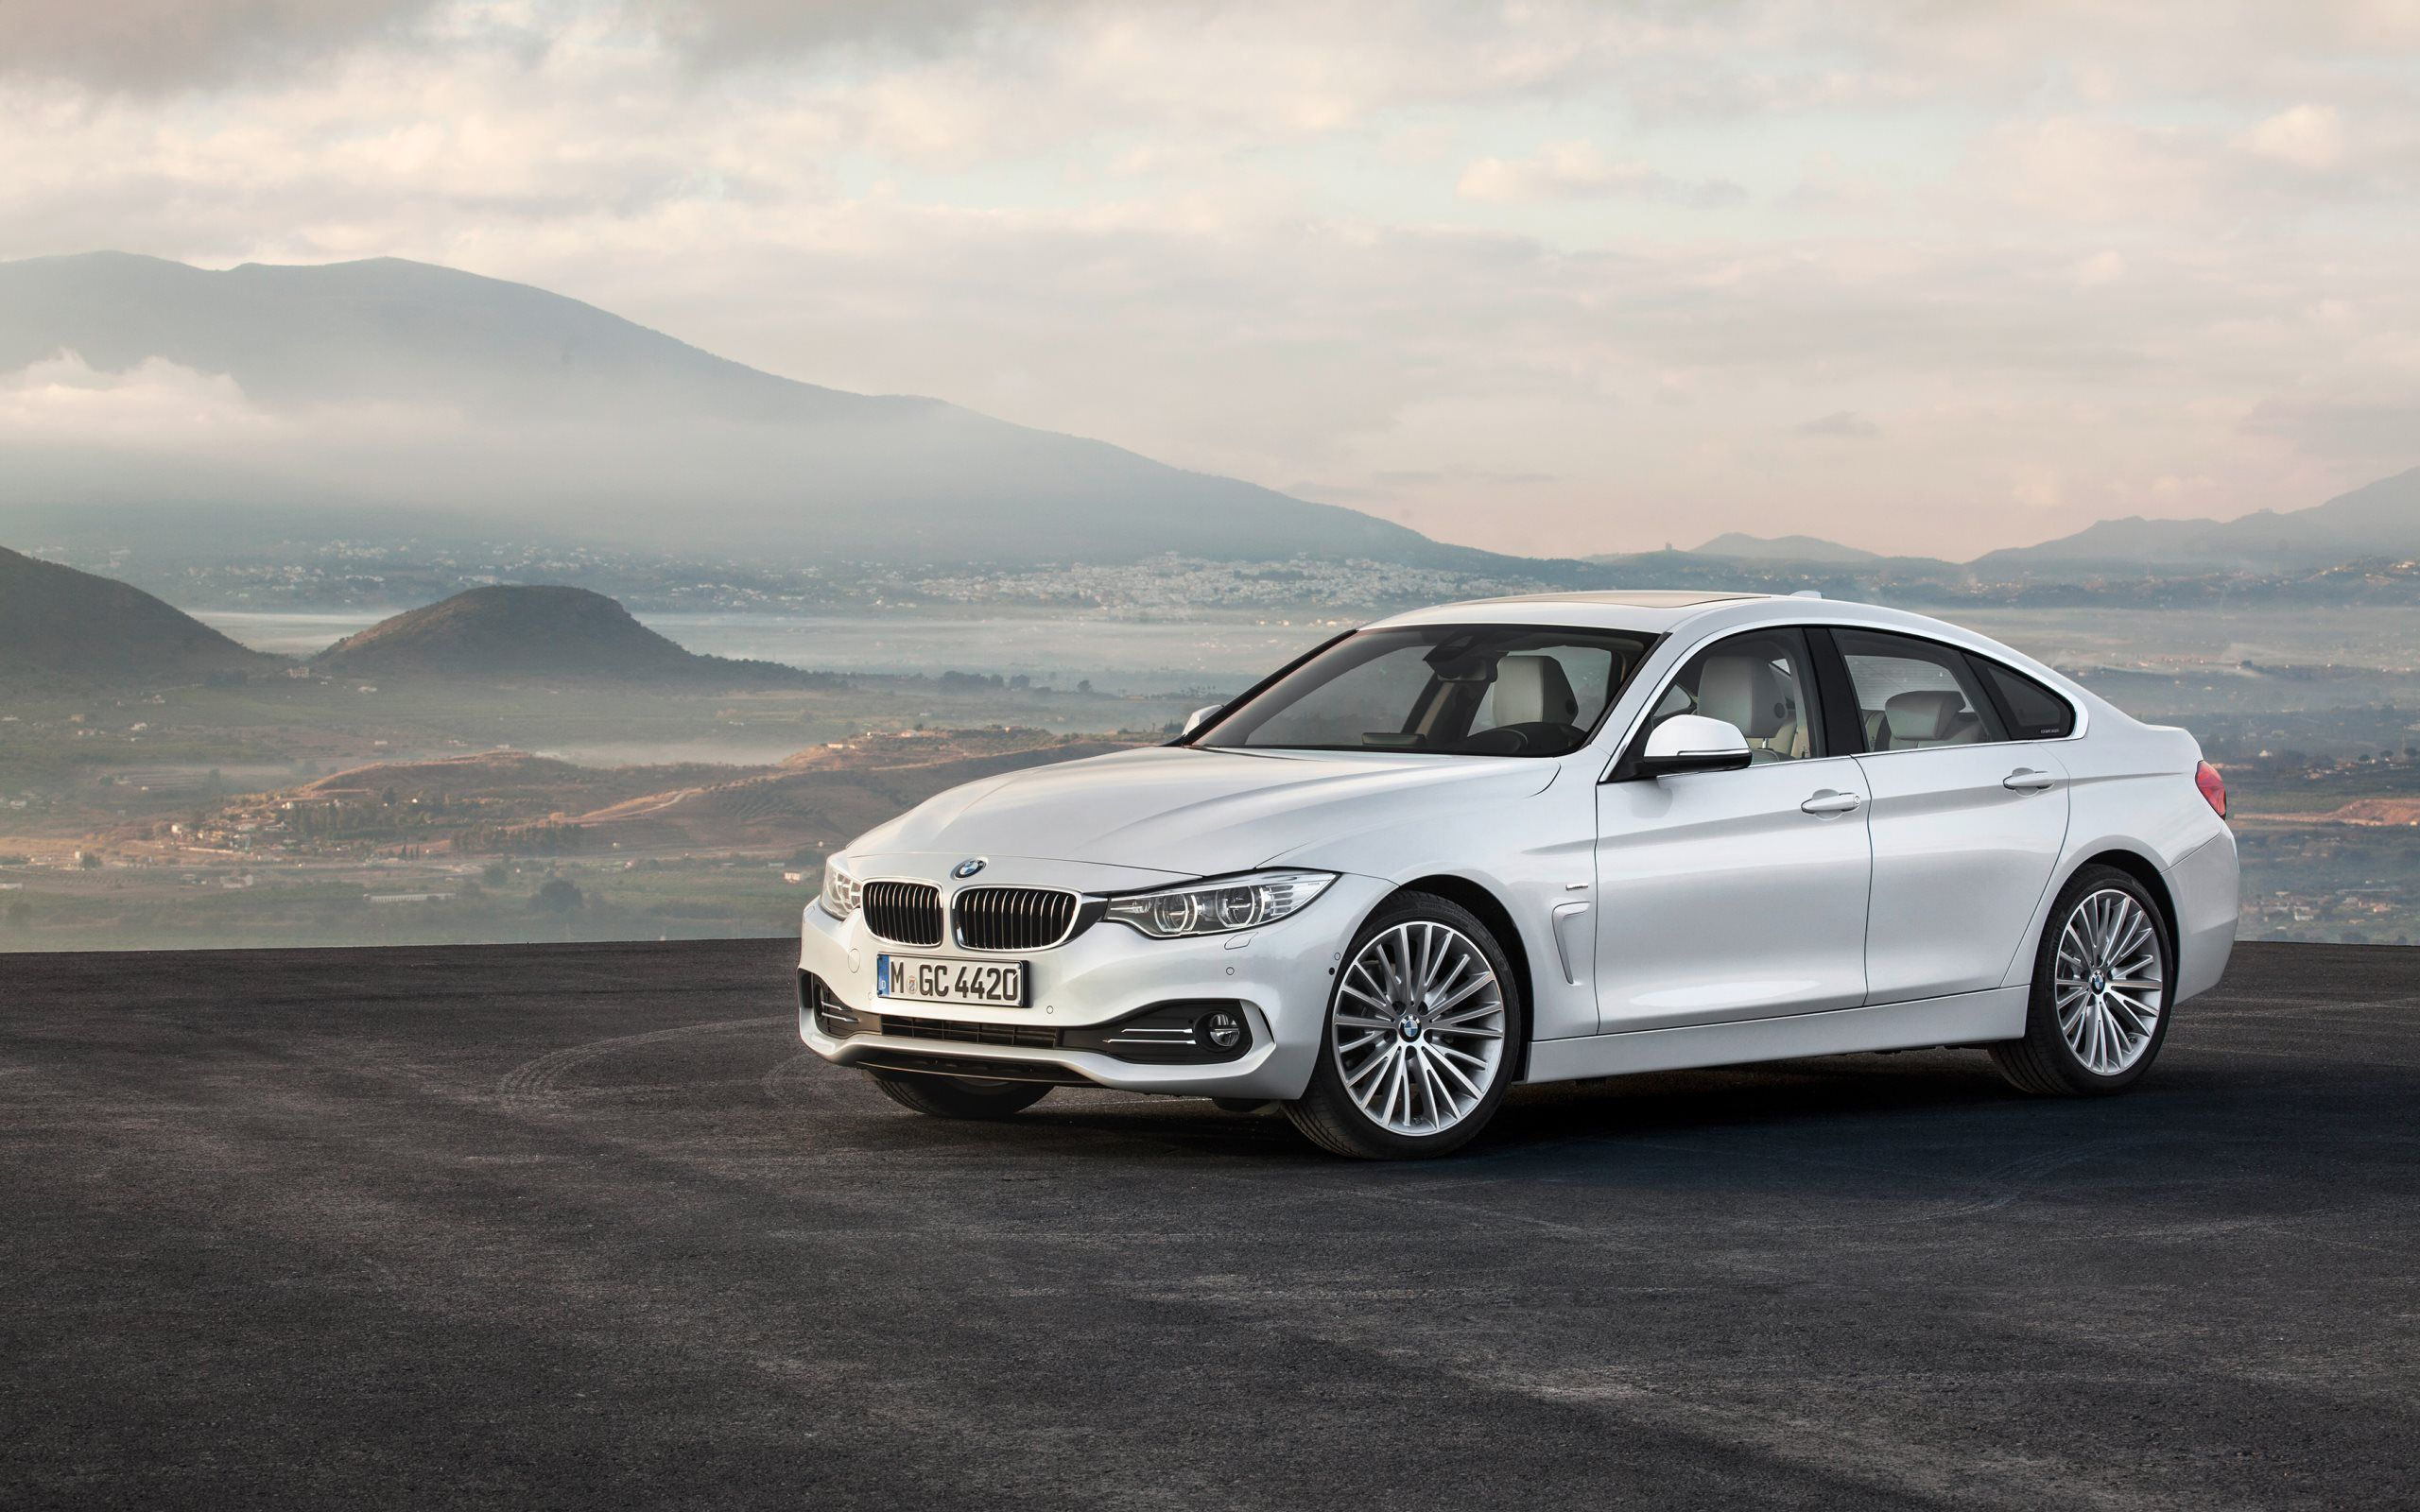 Hd Bmw Series Wallpapers And Photos Hd Cars Wallpapers Bmw 4